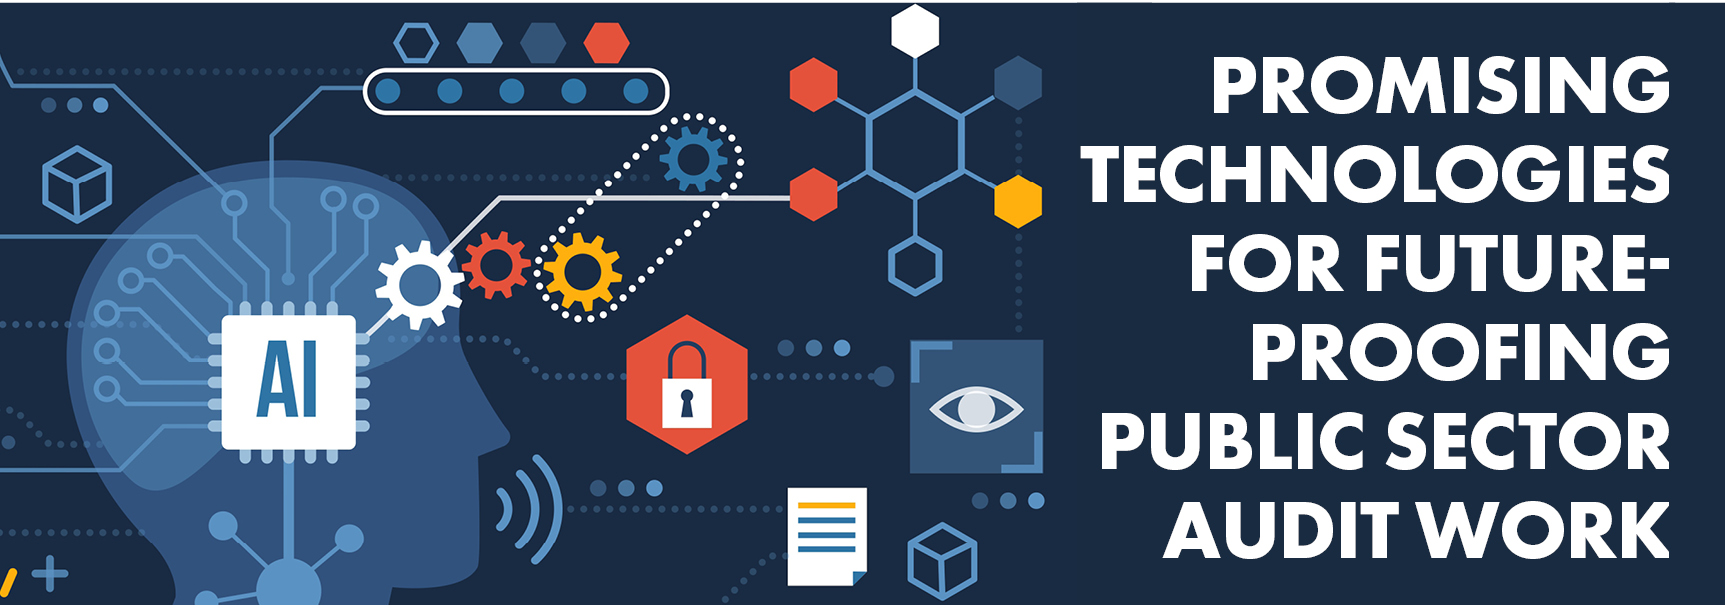 Promising Technologies for Future-proofing Public Sector Audit Work